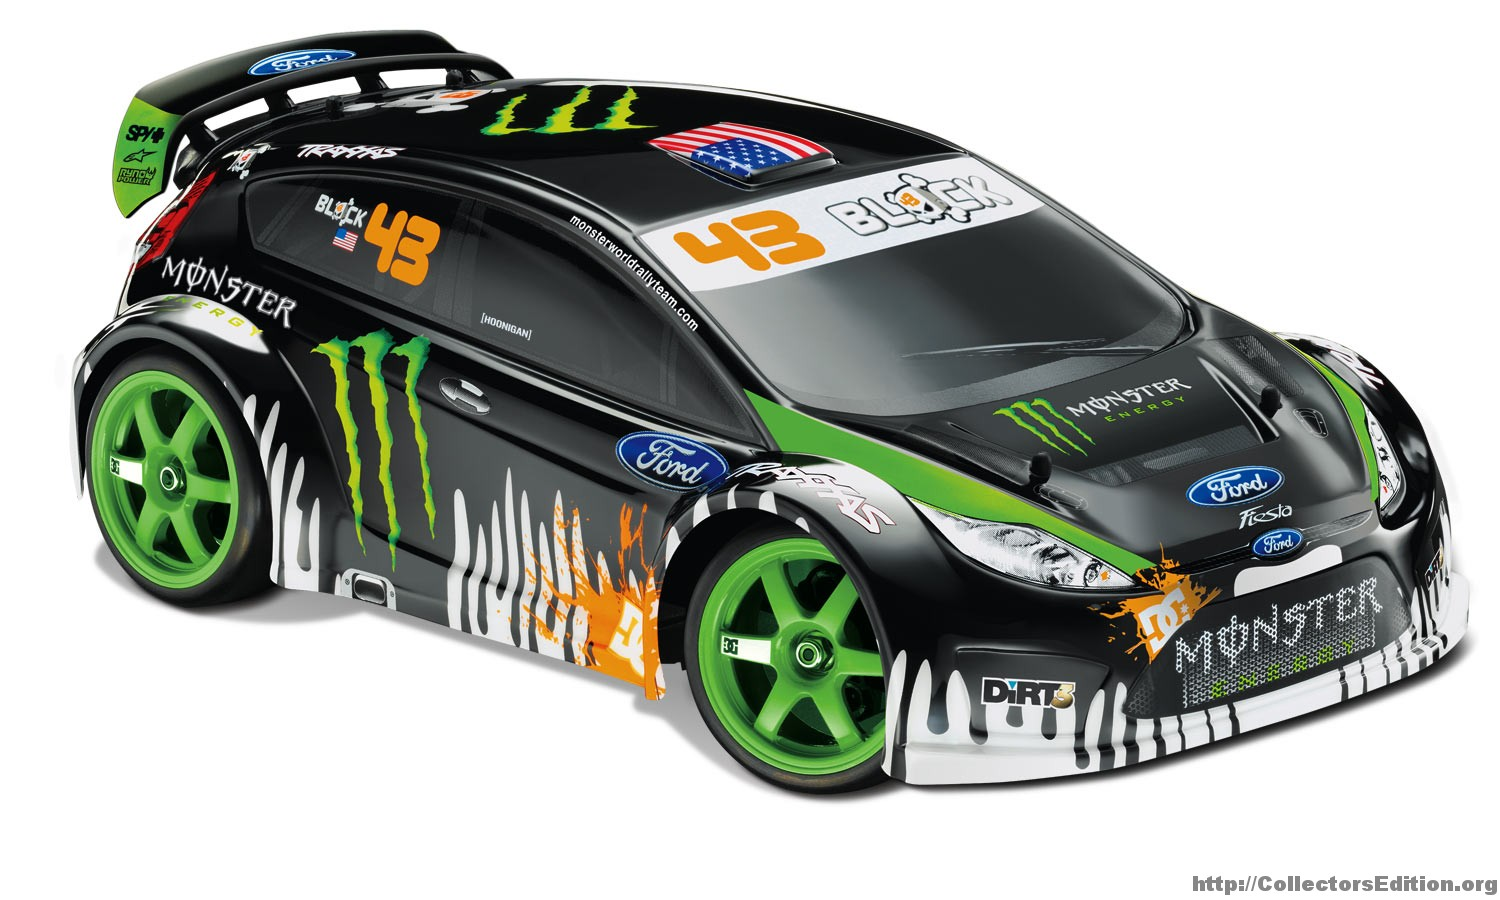 DiRT 3 (Ken Block Gymkhana RC